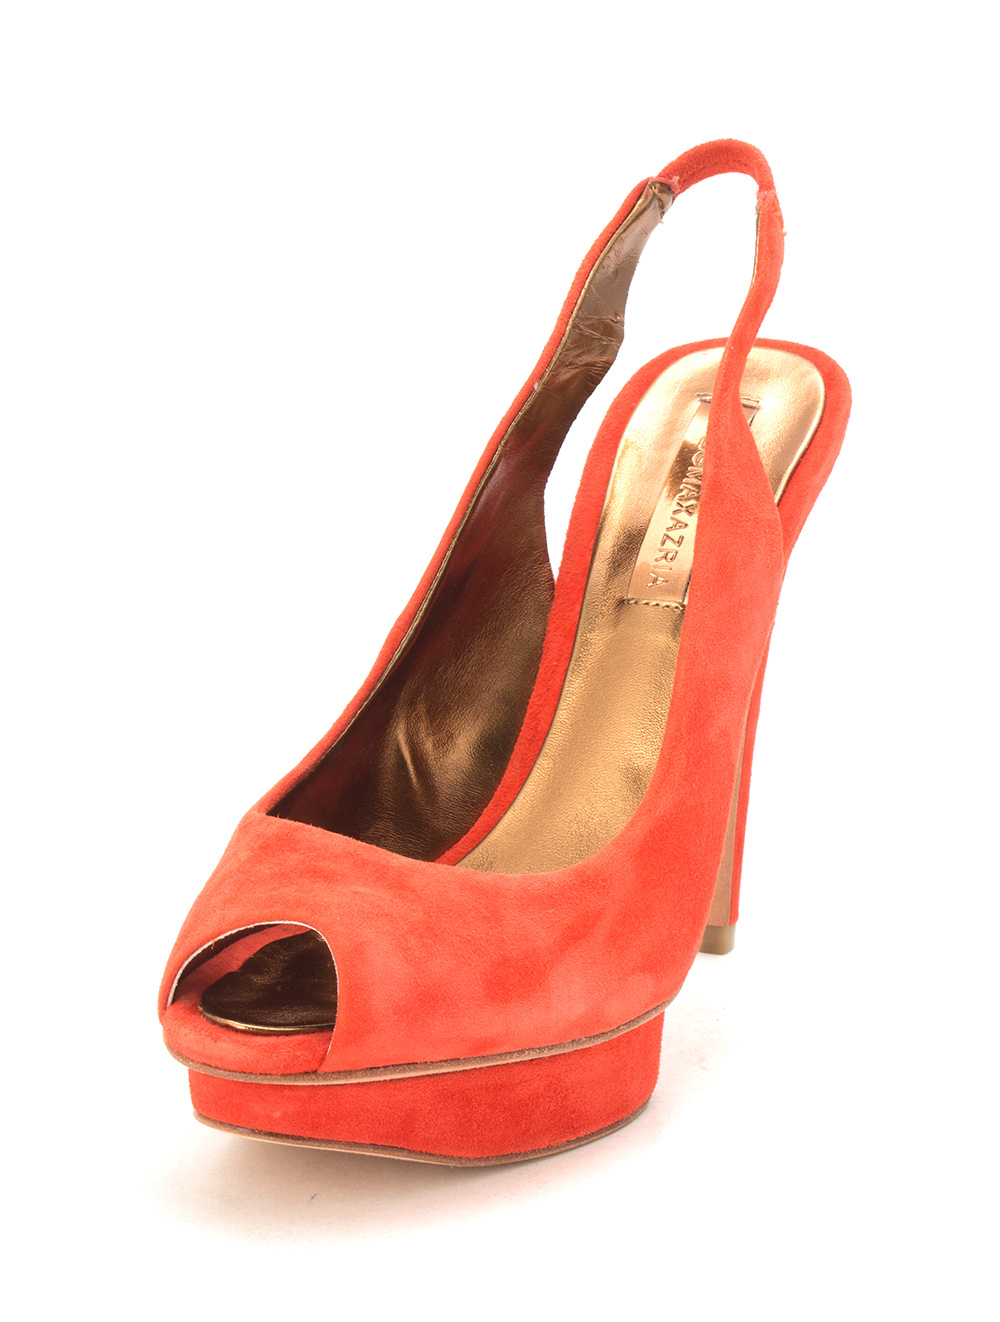 16293dc93a2 Details about BCBGMAXAZRIA Womens Ma fennel Peep Toe SlingBack, Red  poinsetta, Size 5.5 I1zH